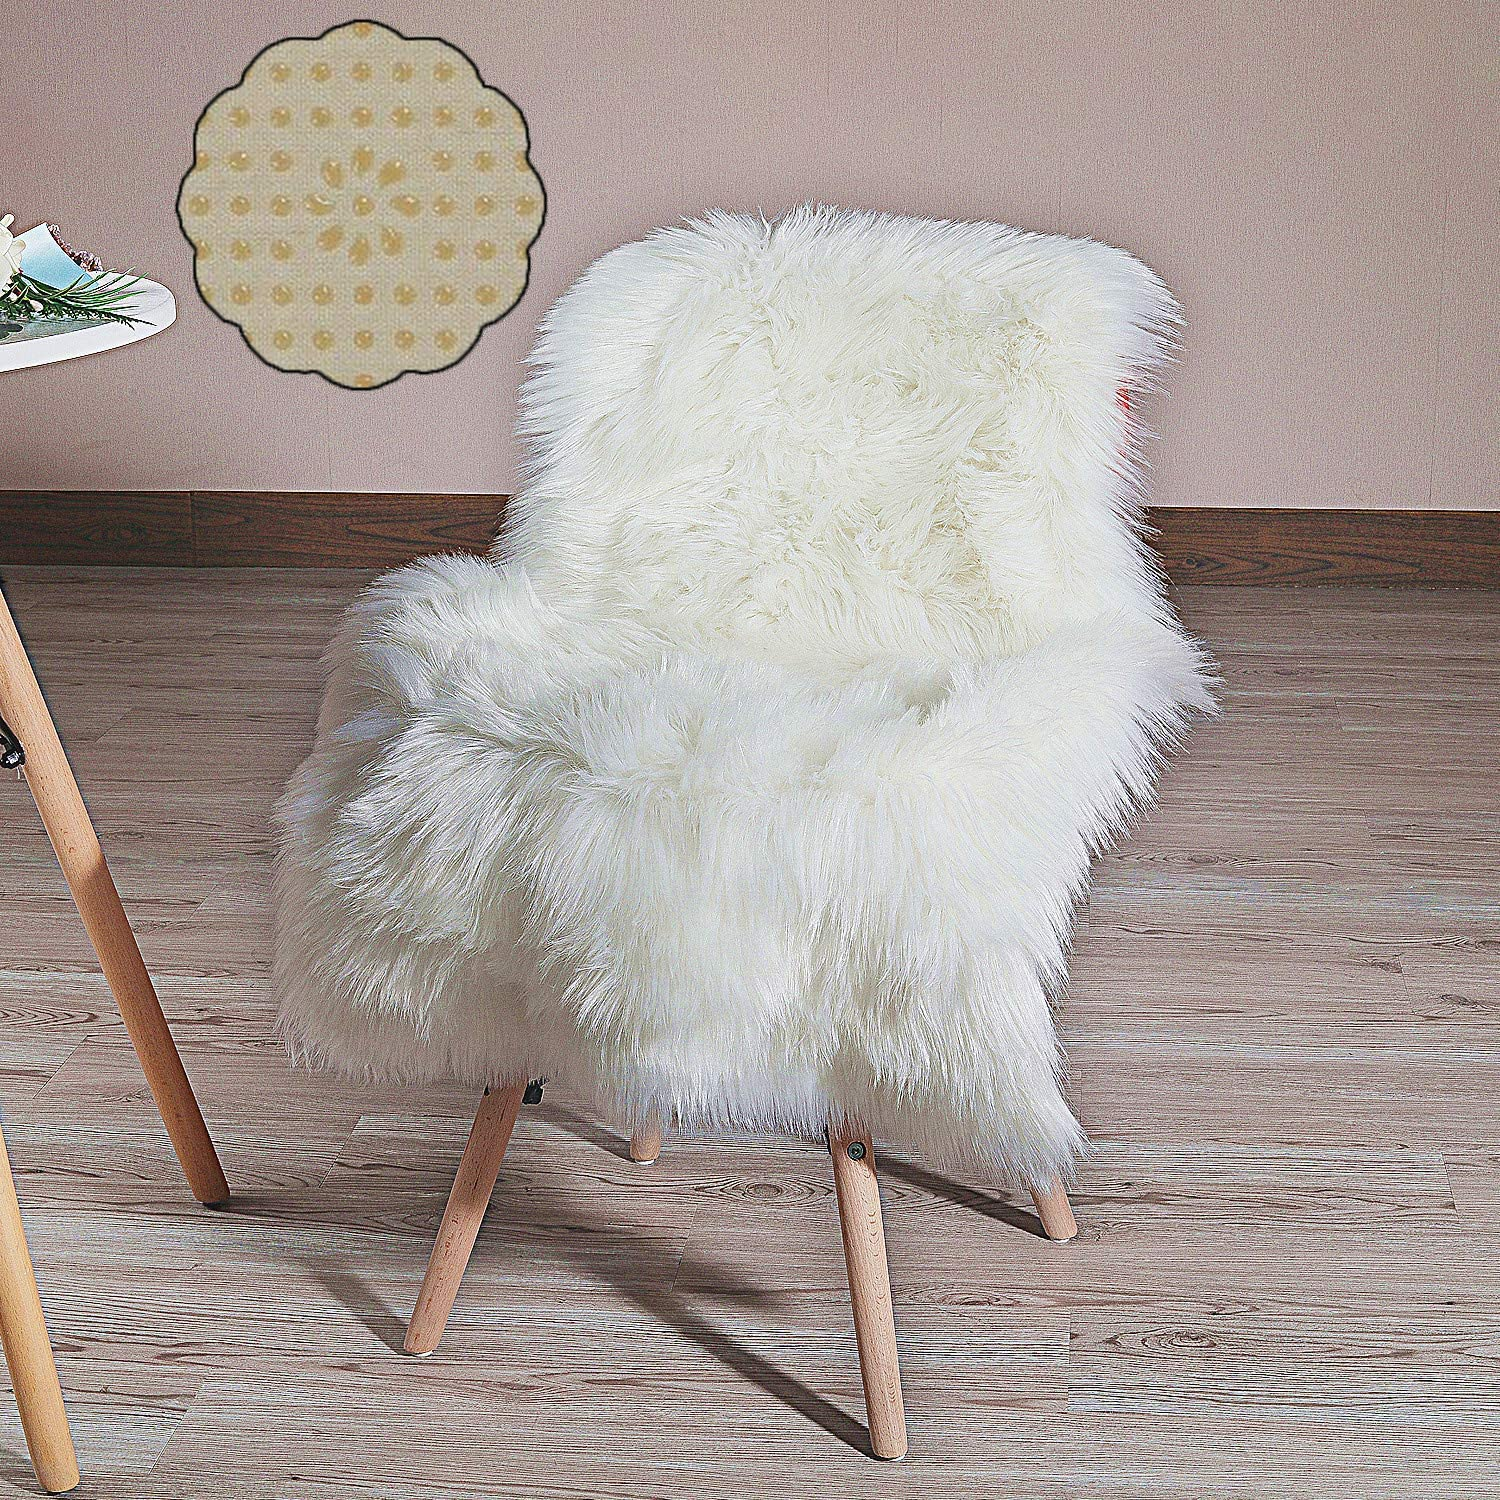 HLZHOU New 2019 Upgraded Non-Slip Faux Fur Rug, Fluffy Rug, Shaggy Rugs,Faux Sheepskin Rugs Floor Carpet for Bedrooms Living Room Kids Rooms Decor (2x3 Feet (60 x 90cm), White)